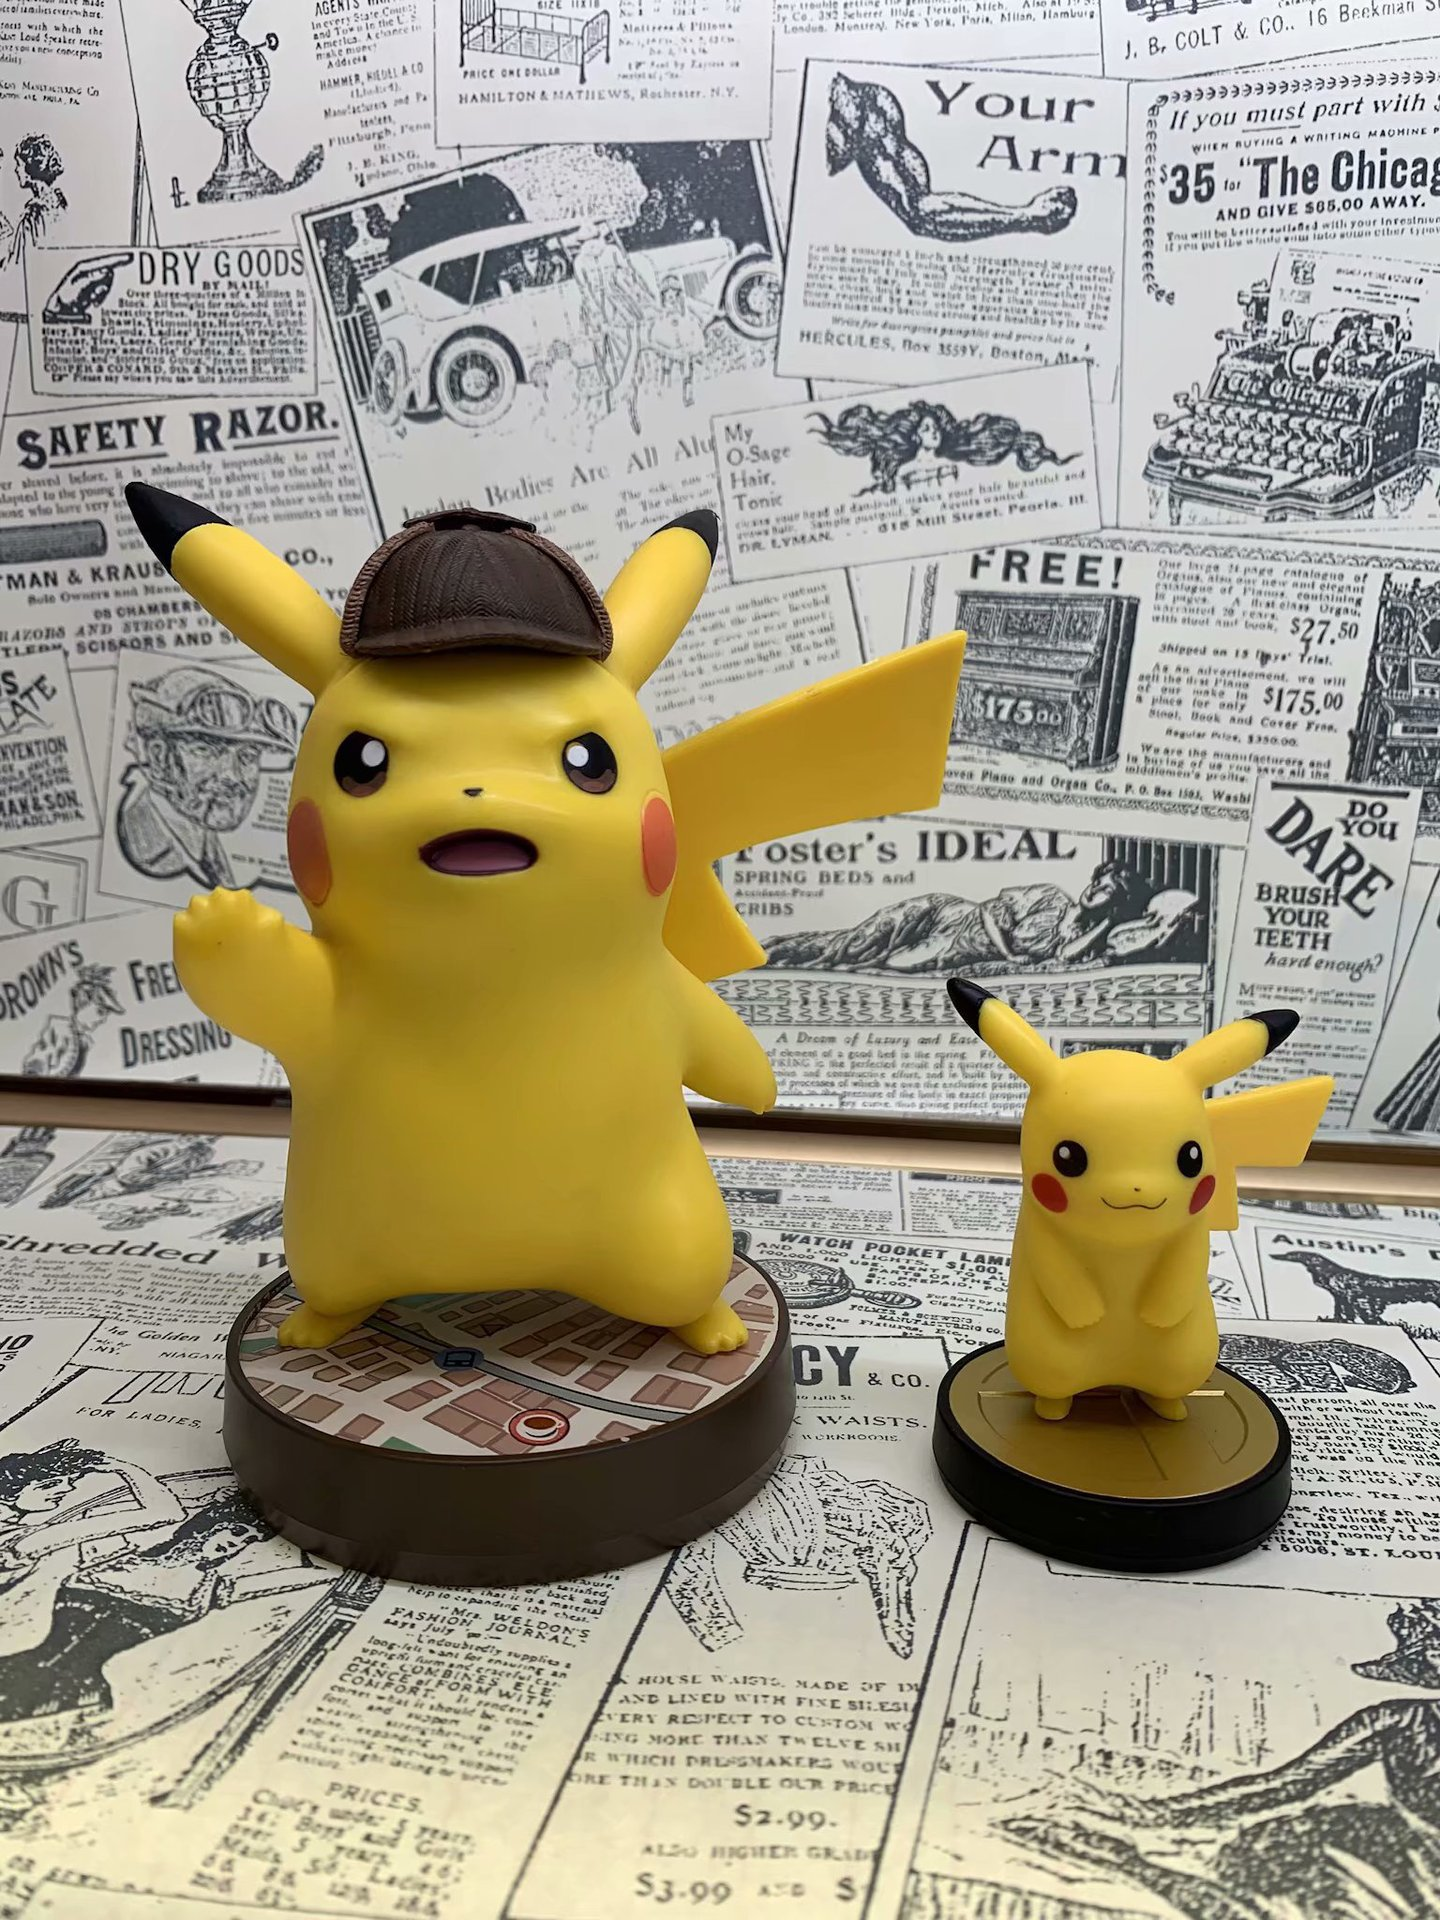 Pokemon Detective Pikachu 2 Pet Elf Boxed Garage Kit Model Diffuse